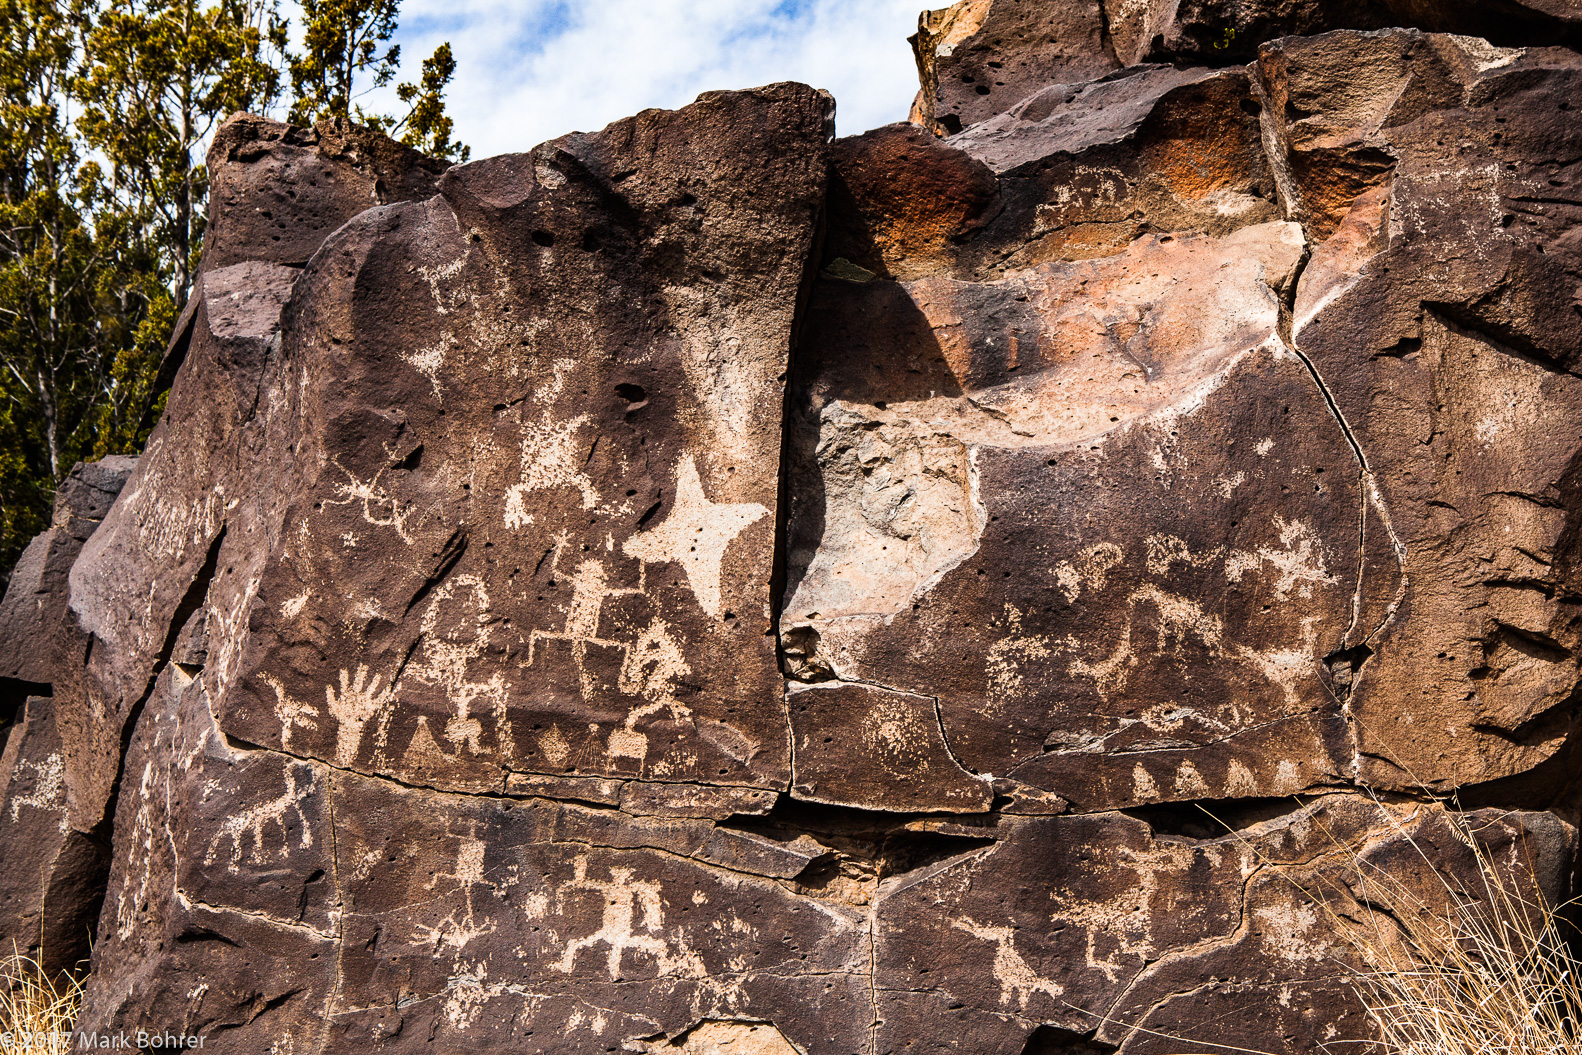 Toothy open-mouthed war god at center right - star kachina at center left - La Cieneguilla Petroglyph Site